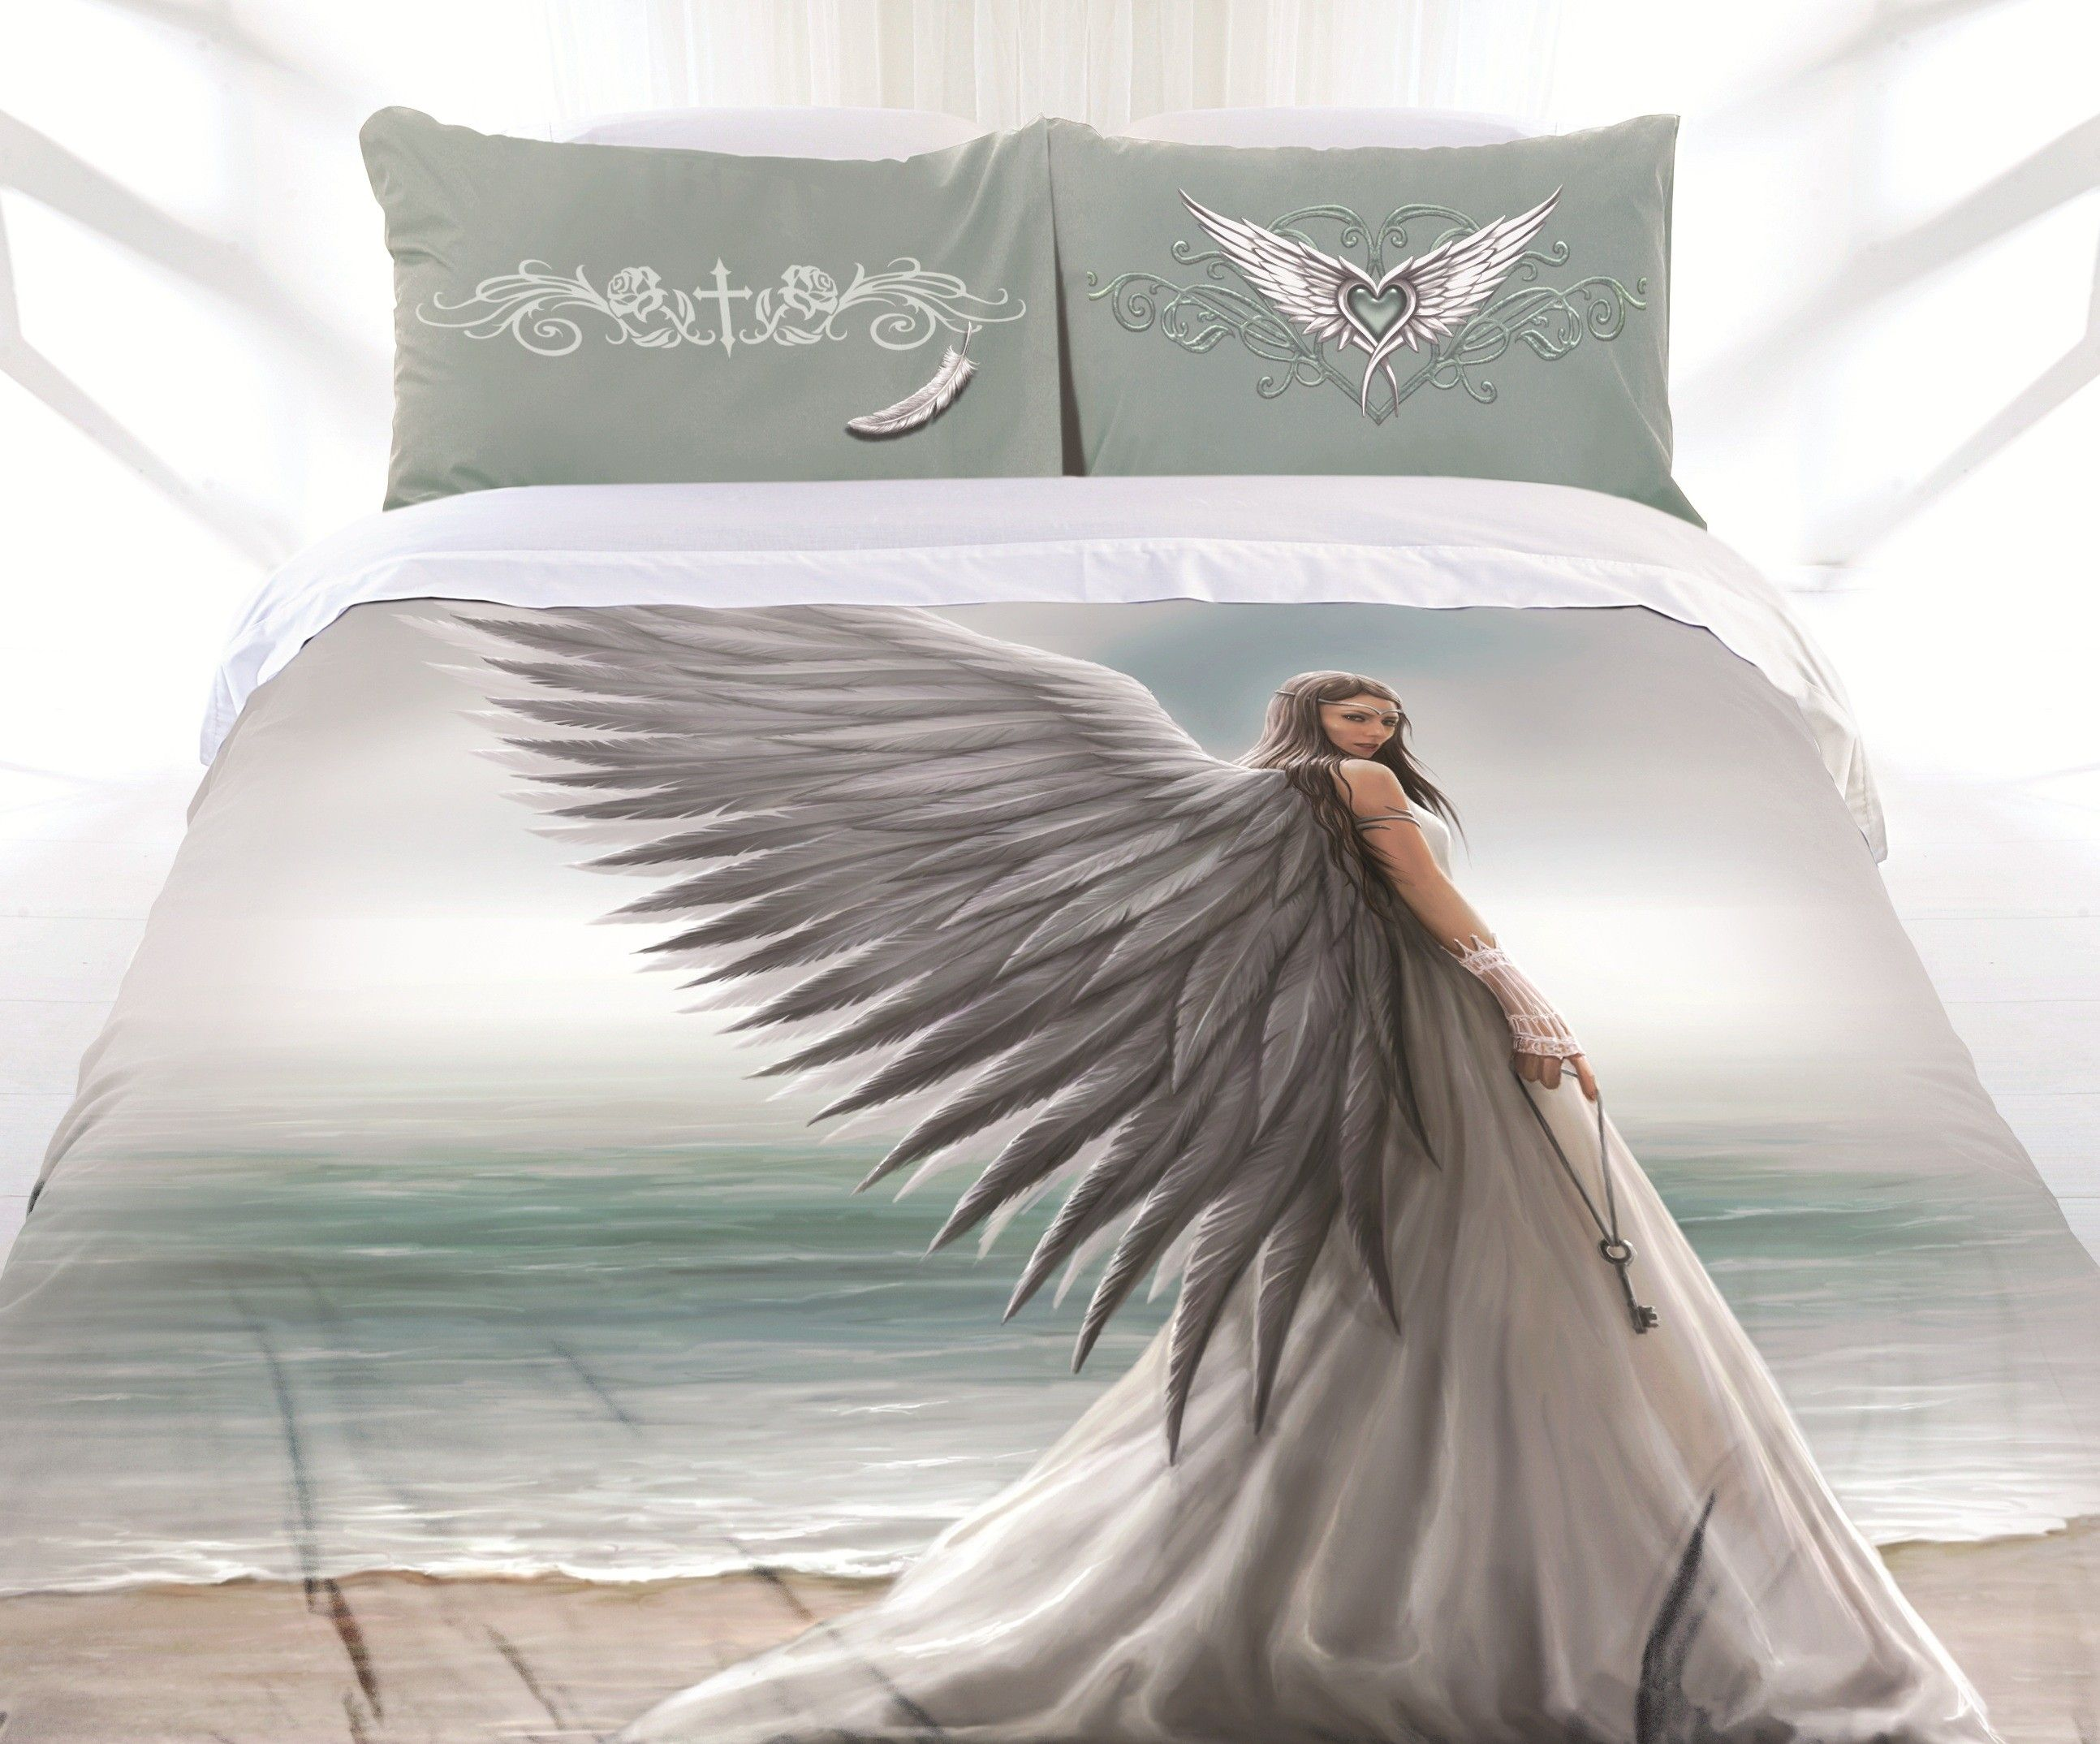 DOUBLE QUEEN KING Pure Heart Unicorn Quilt Cover Set by Anne Stokes